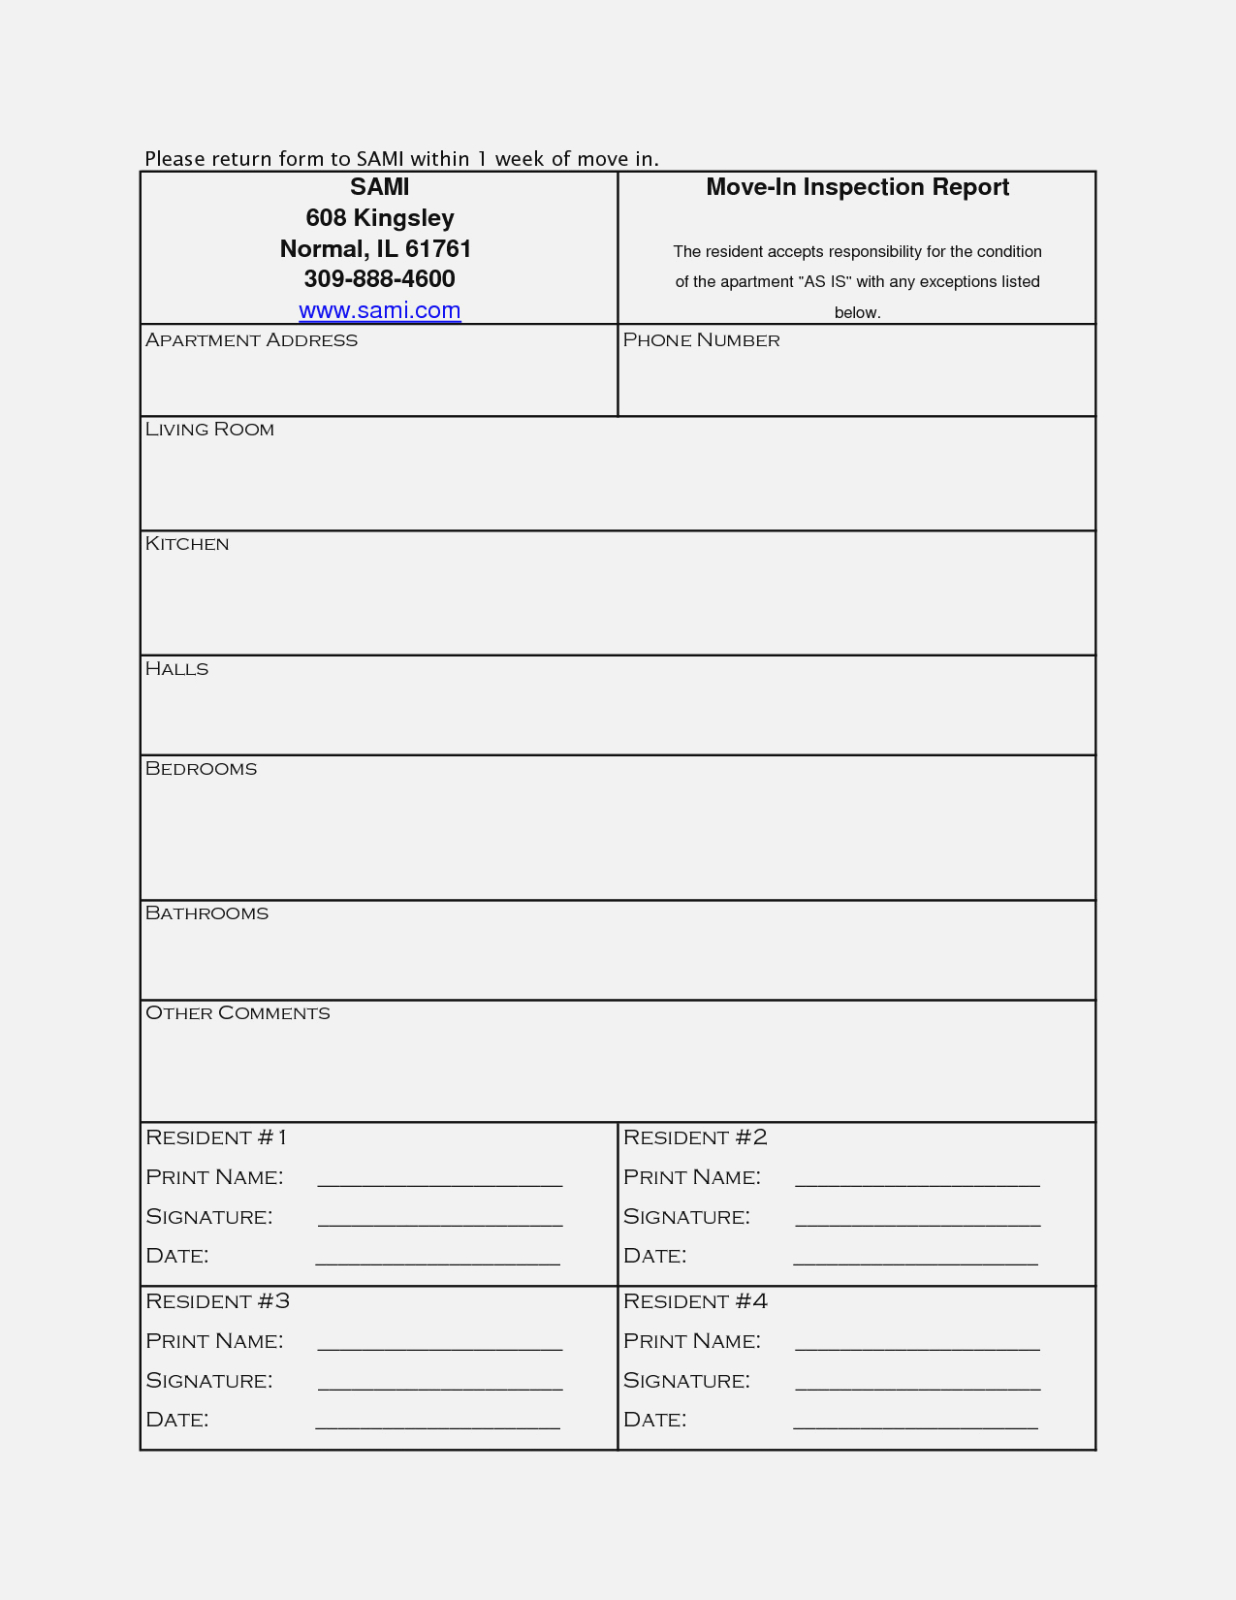 Kinds Of Forms – Part 15 – Free Printable Will Forms – The Invoice - Free Printable Will Forms